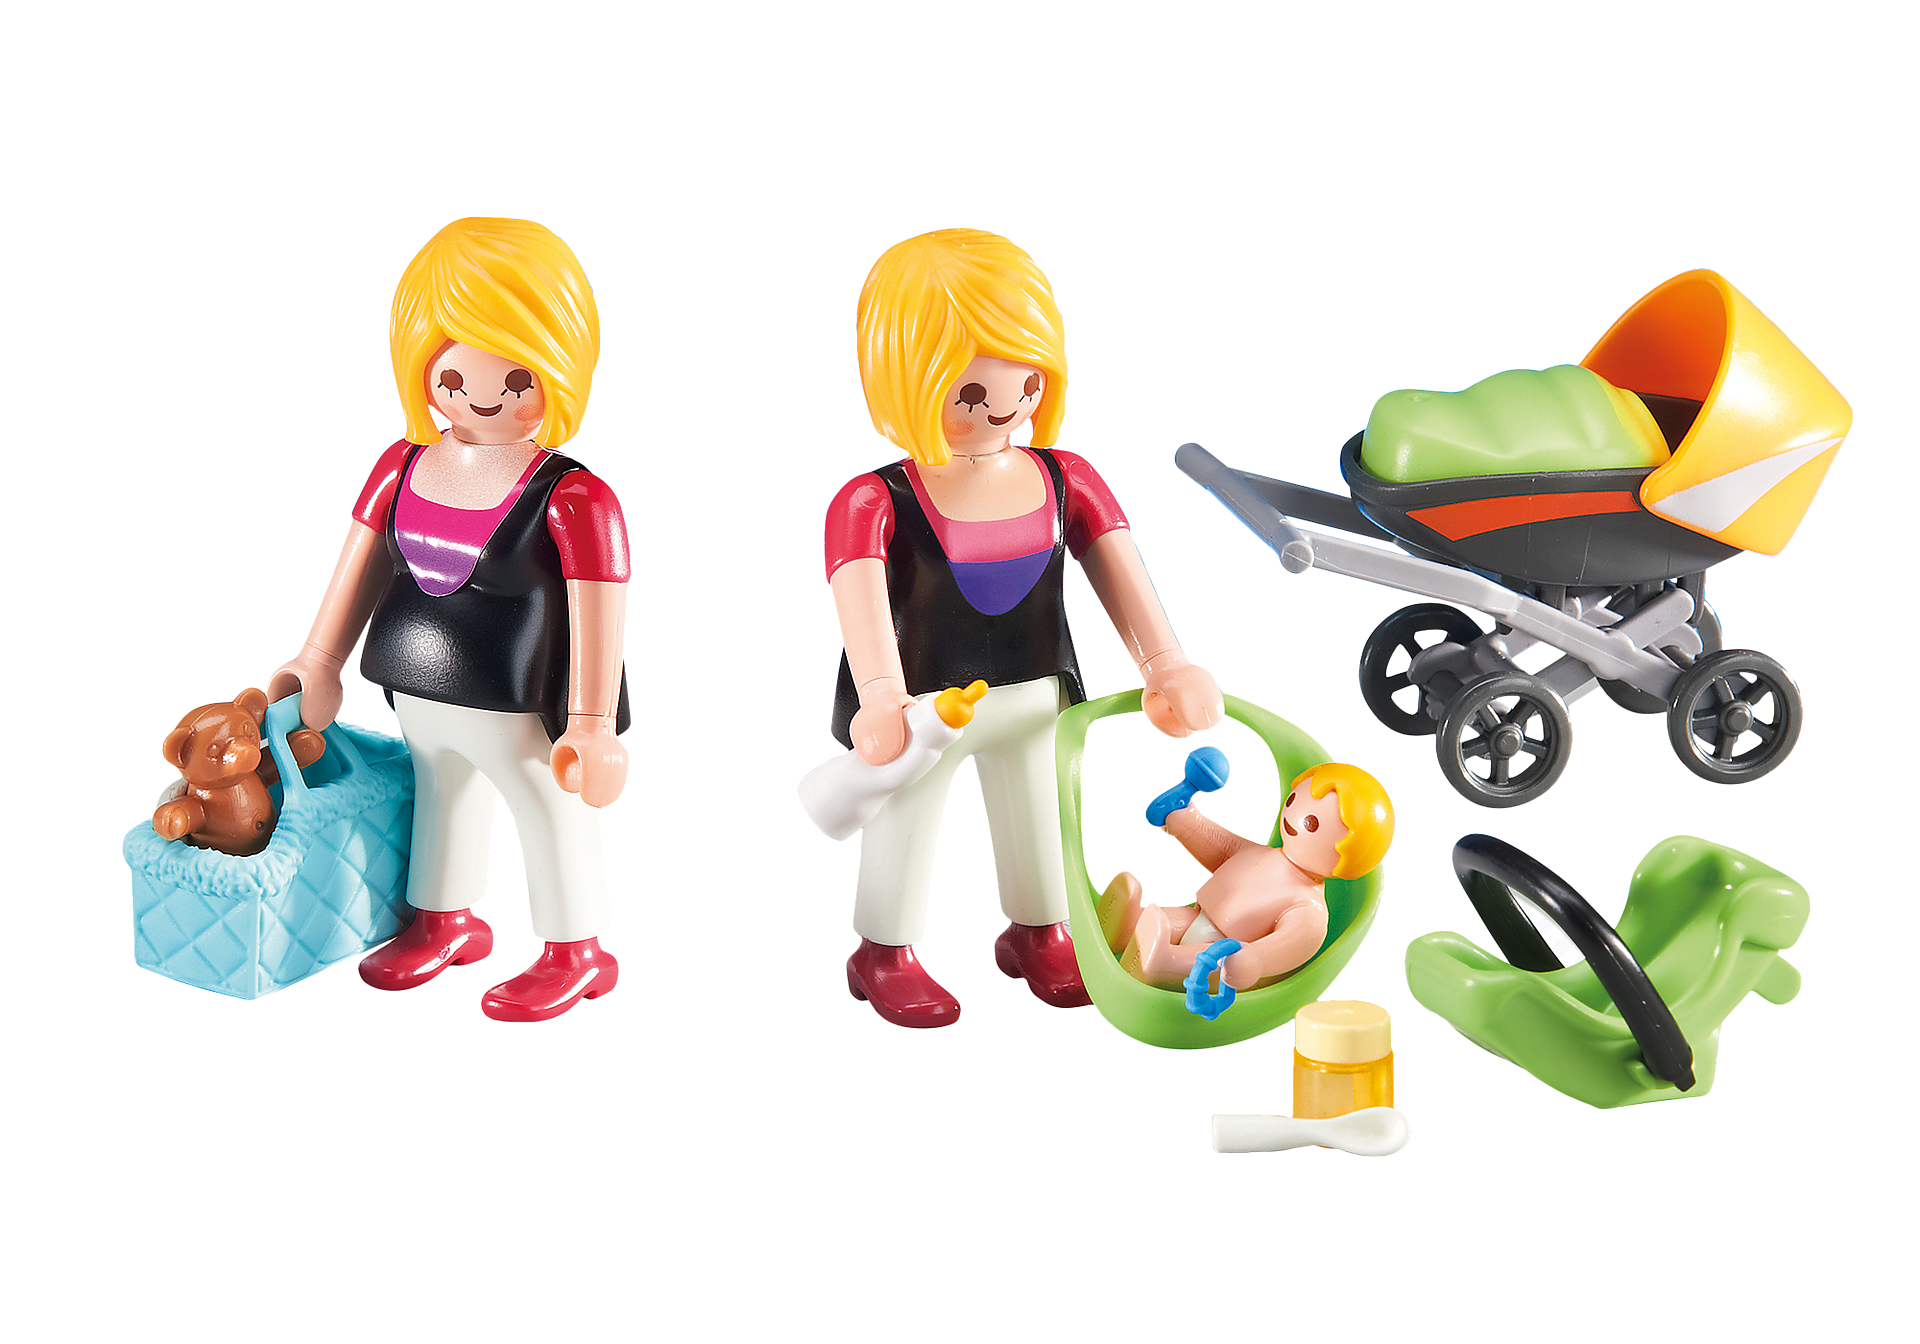 http://media.playmobil.com/i/playmobil/6447_product_detail/Pregnant Woman and Mother with Baby